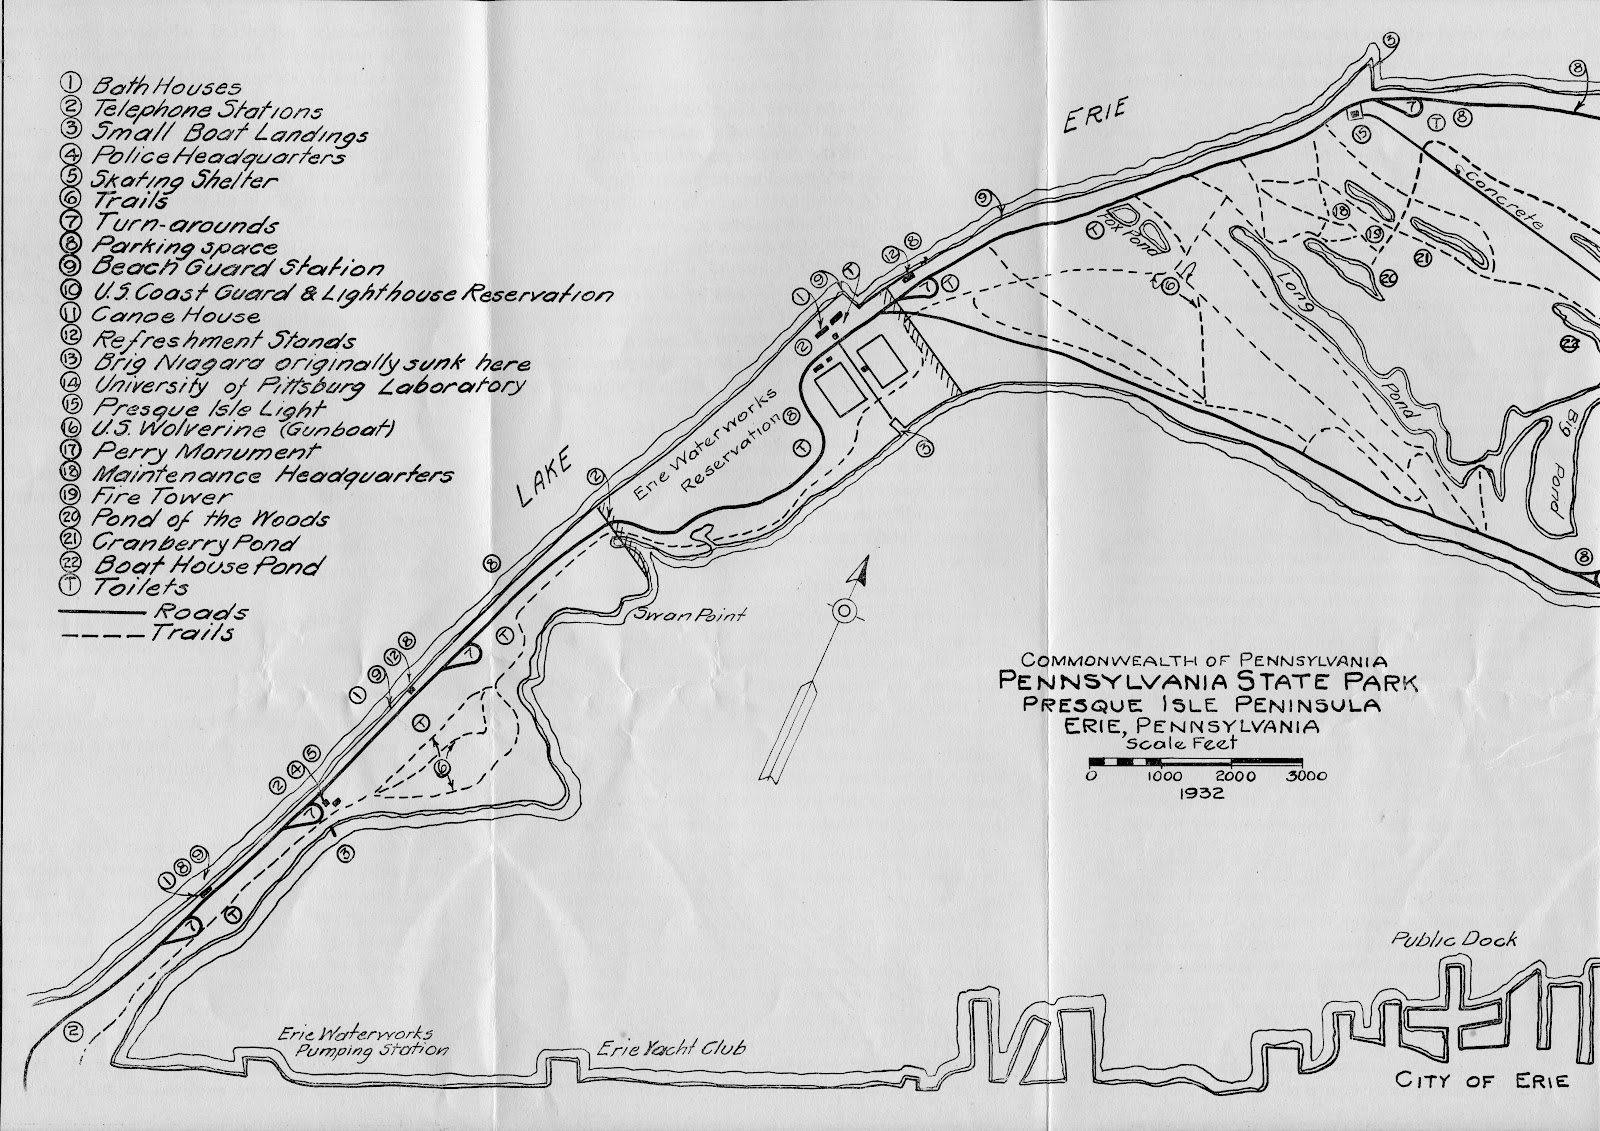 Old Time Erie: Presque Isle Park map 1932